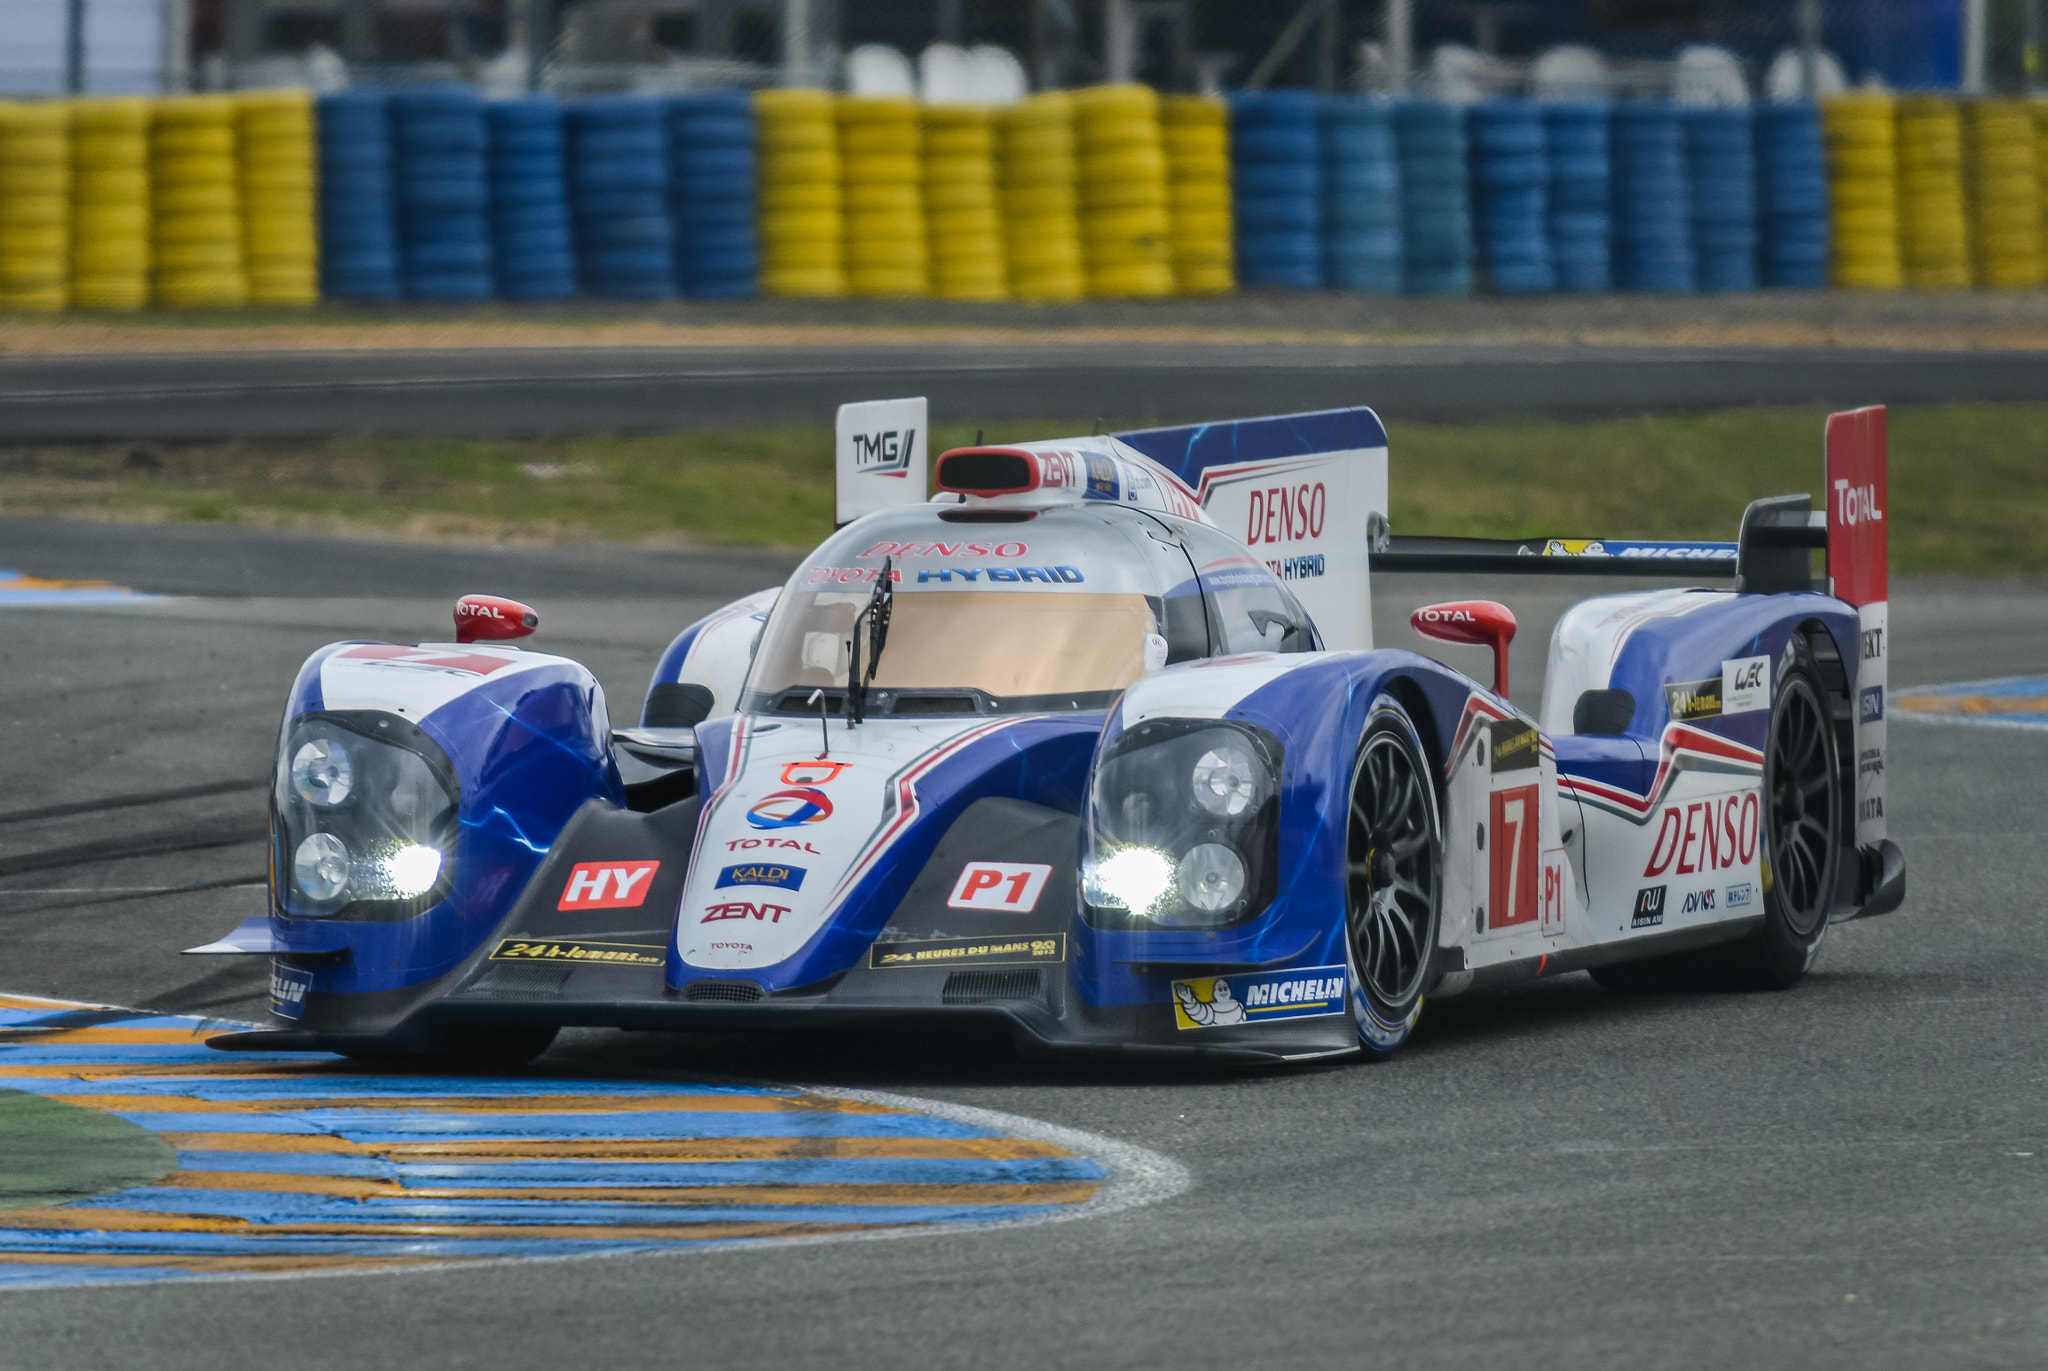 Photograph Toyota RACING - N°7 24 Hours Of Le Mans 2013 by Julien REBOULET on 500px